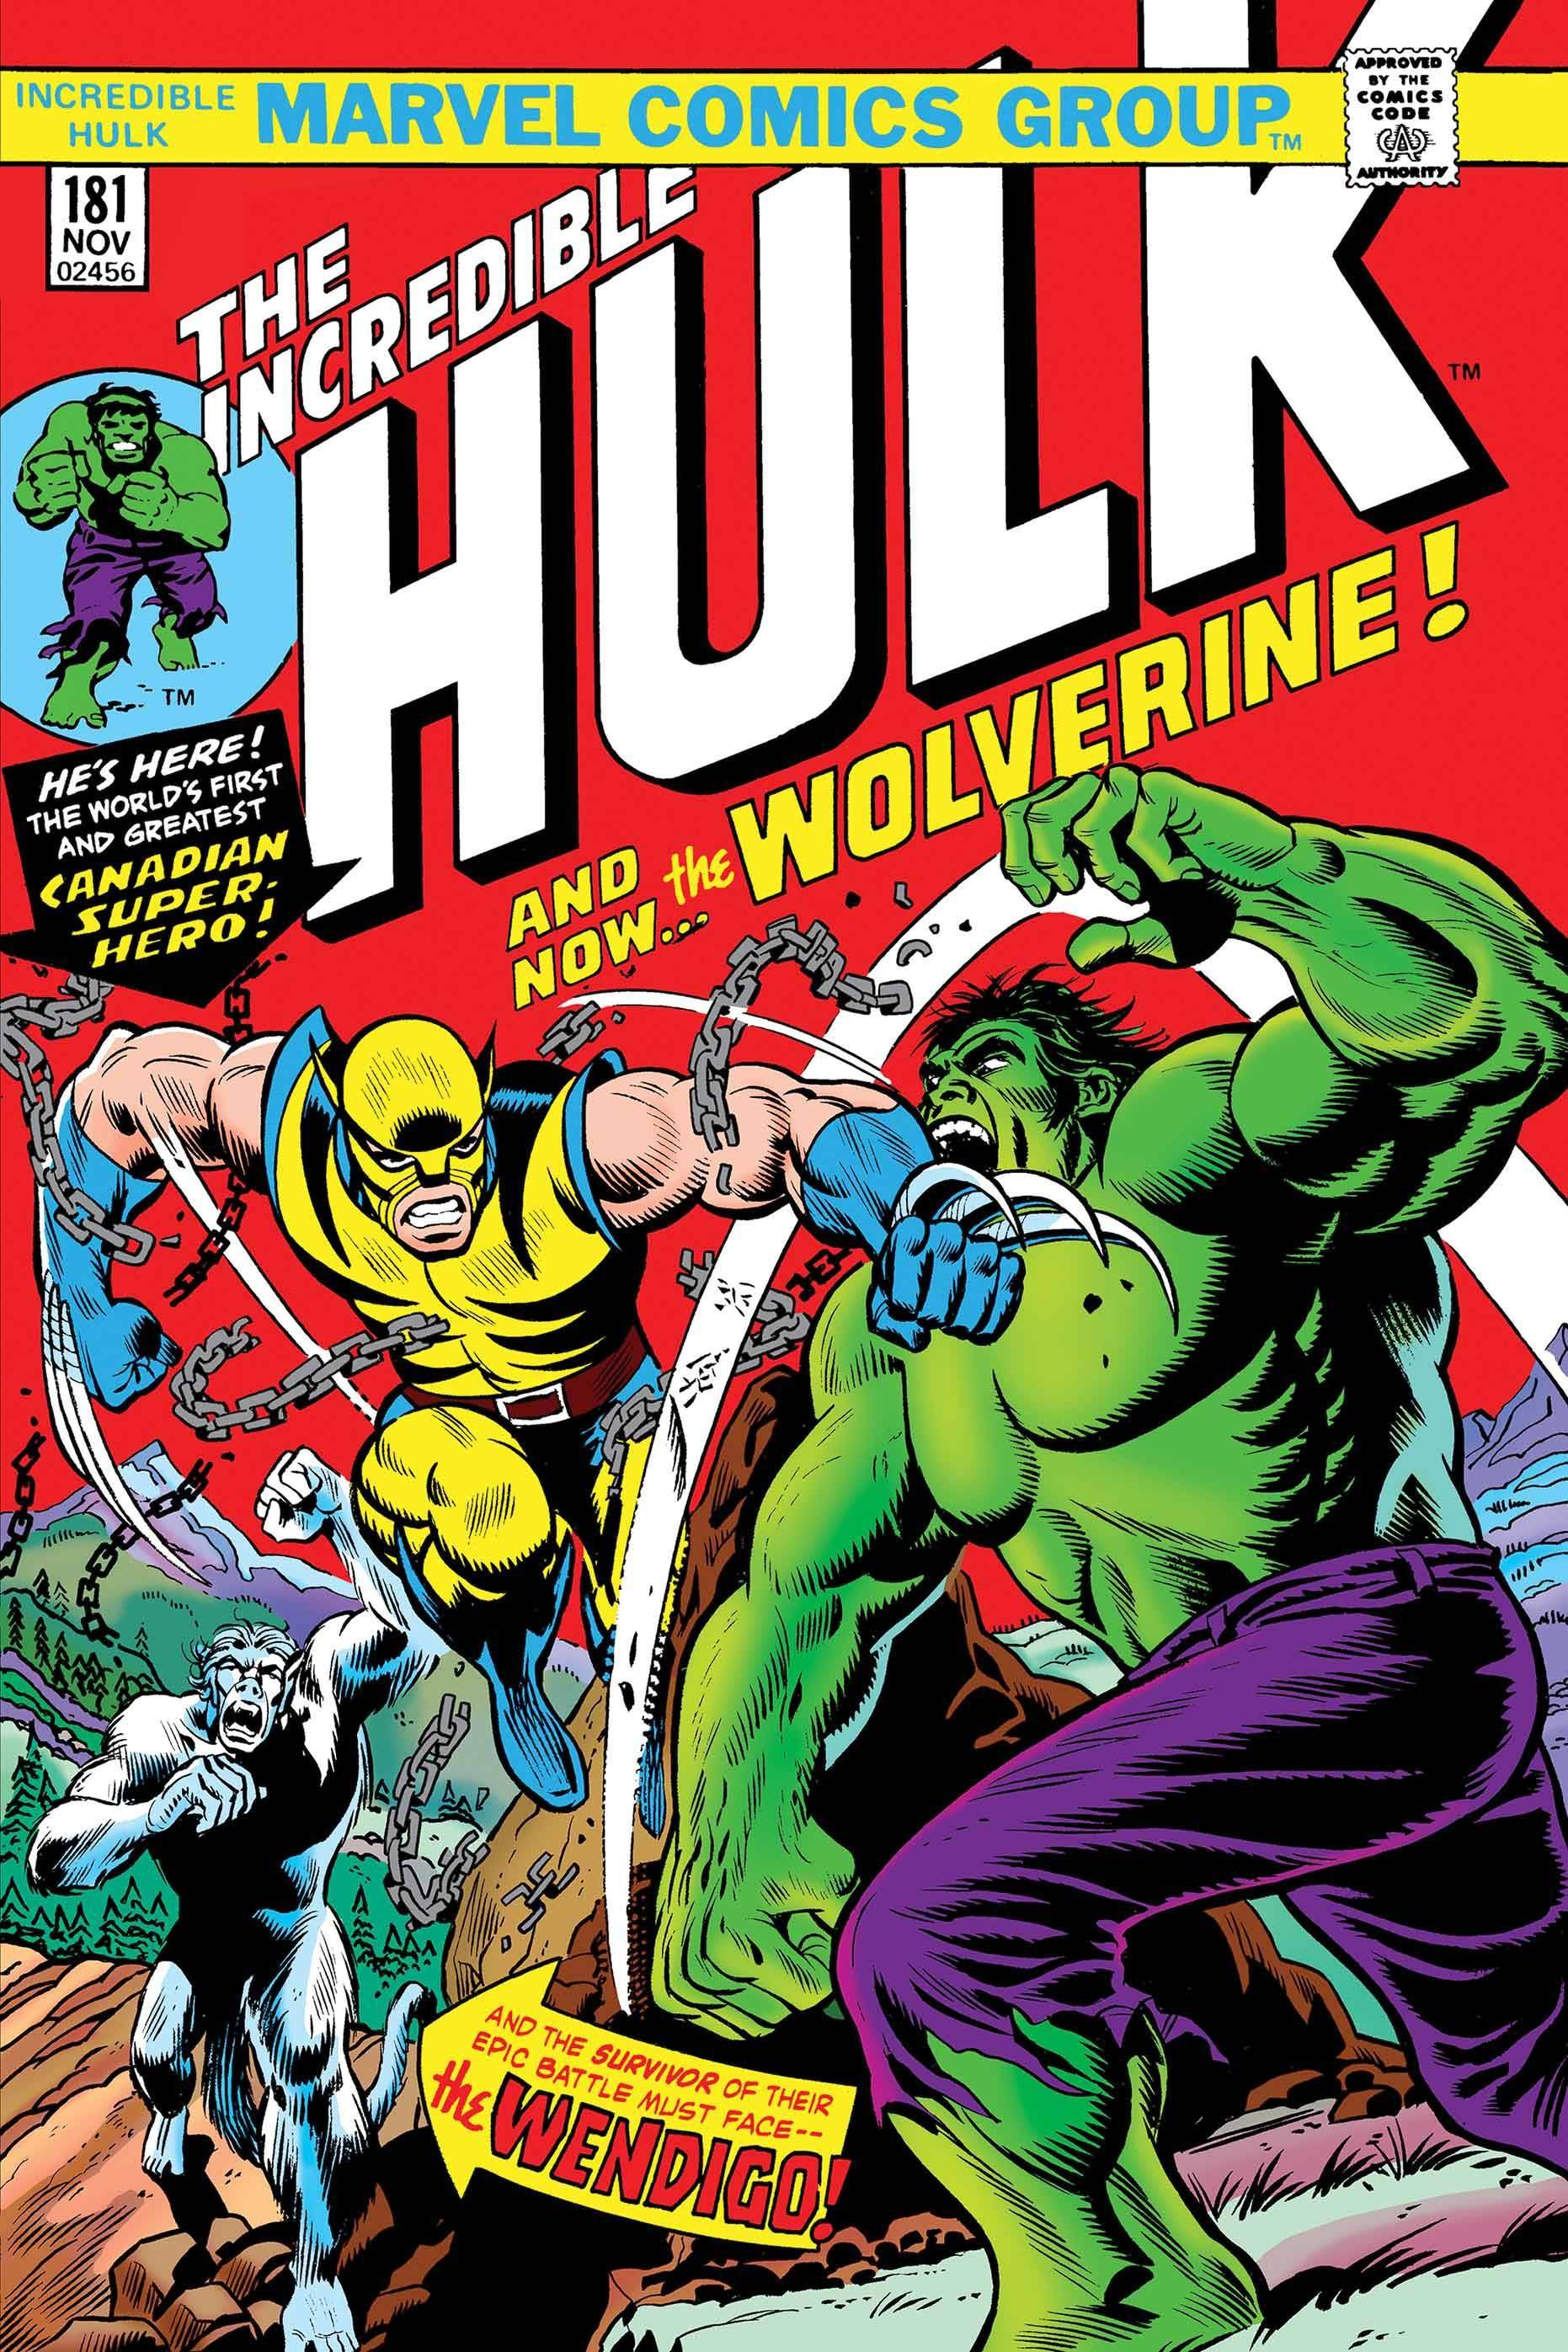 INCREDIBLE HULK #181 FACSIMILE EDITION NEW PTG